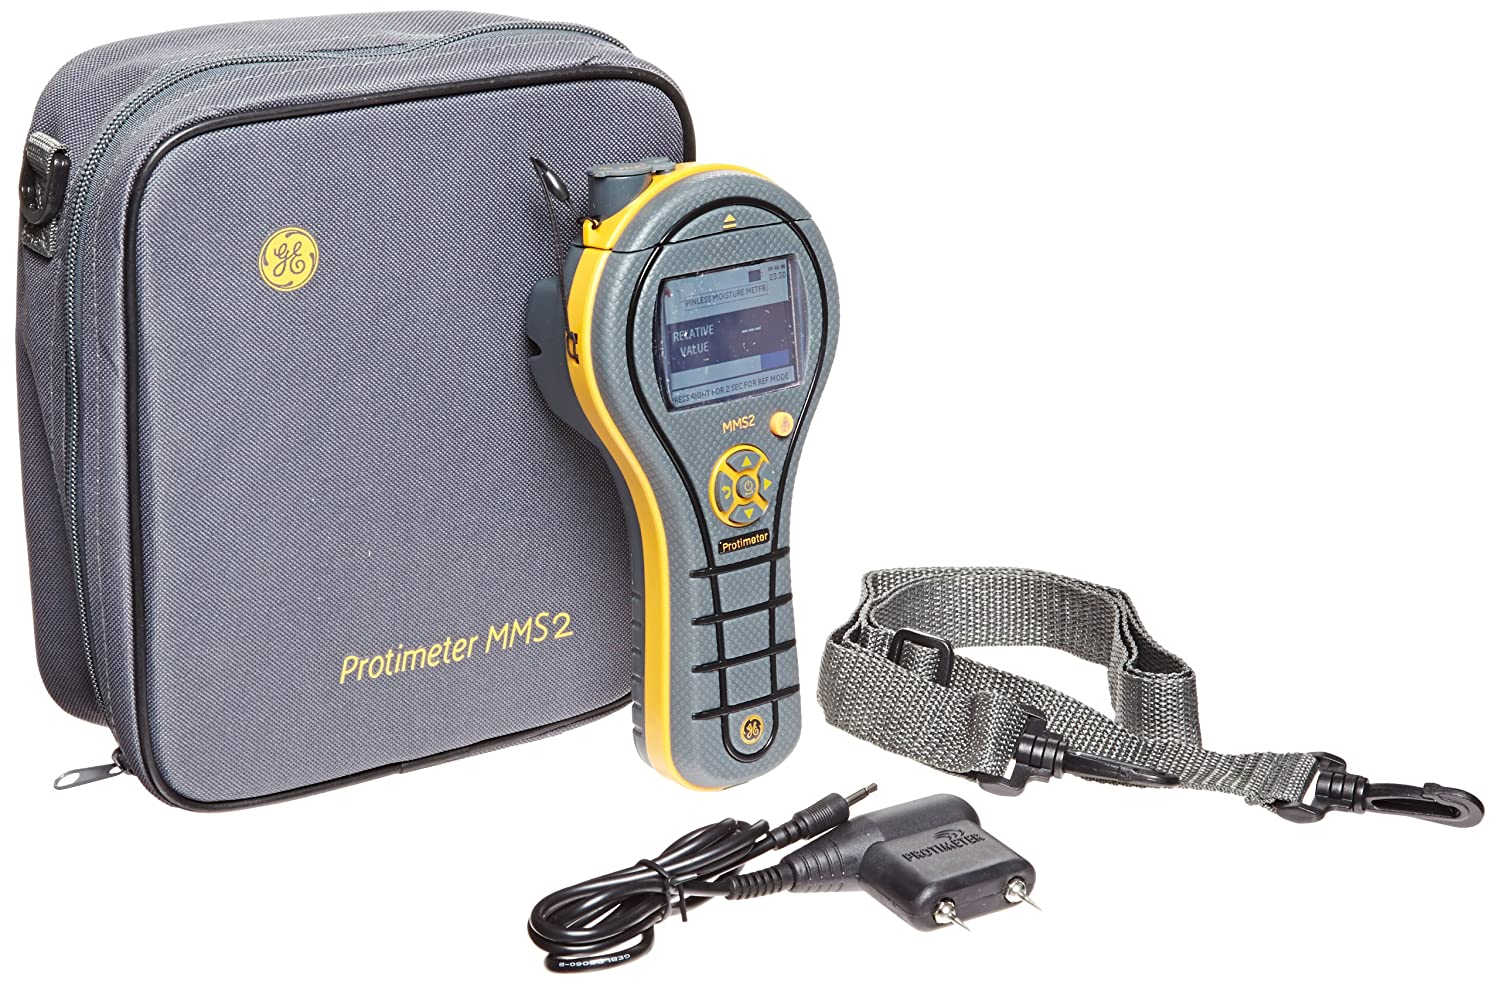 GE Protimeter Import BLD8800 famous MMS2 4-In-1 Measurement Sys Moisture Meter